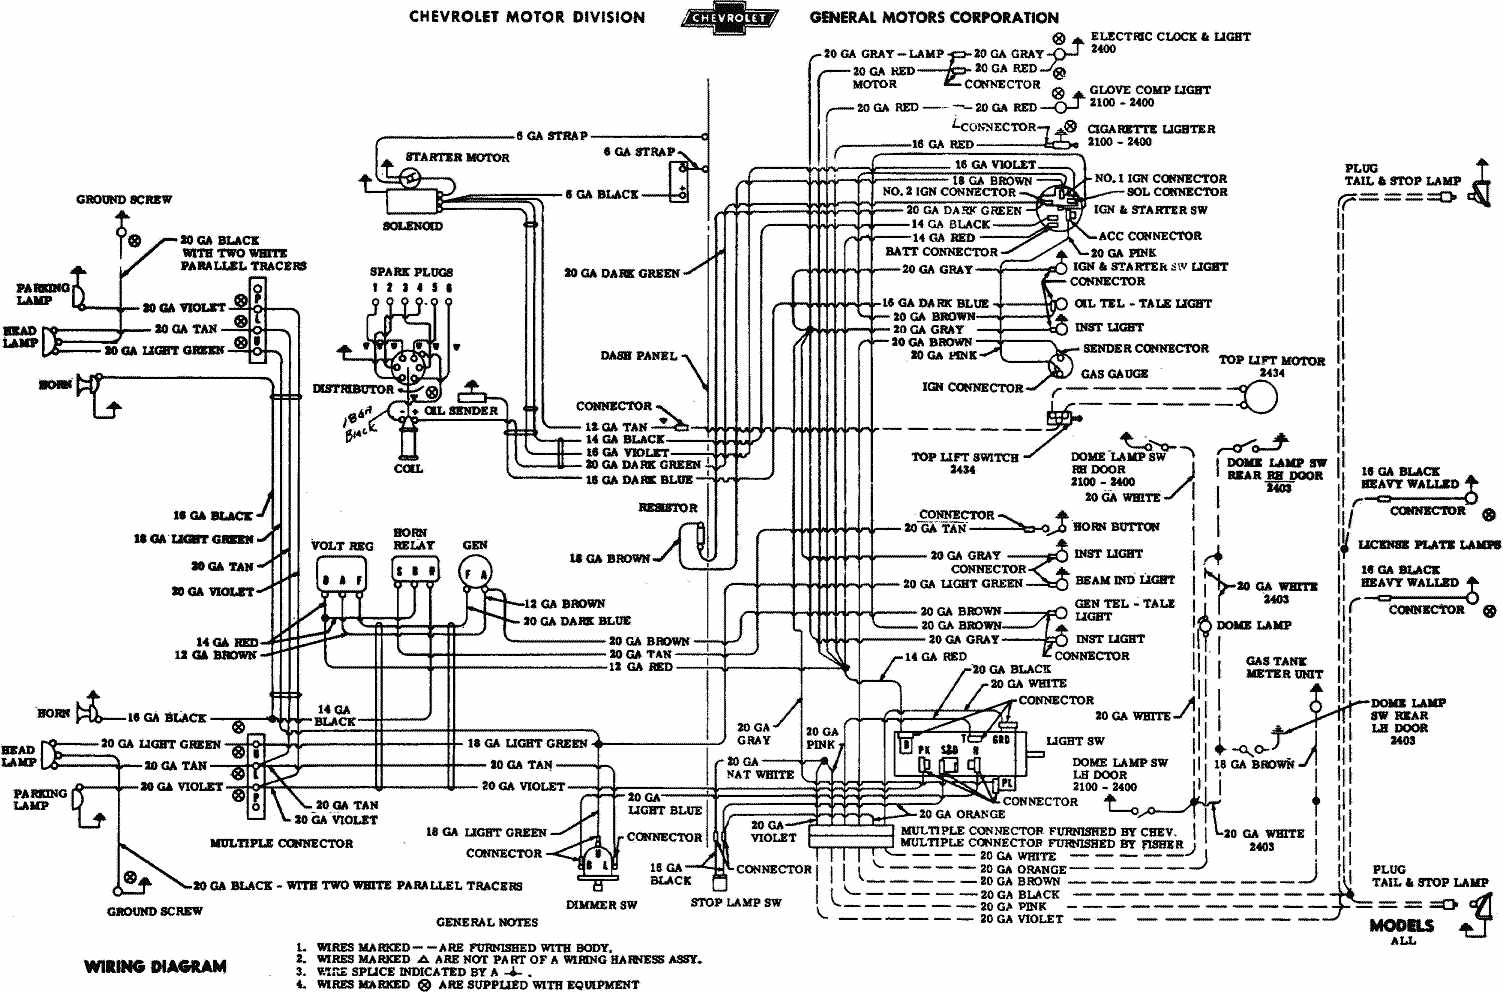 1955 chevy tail light wiring harness diagram 1955 chevy tail light wiring harness